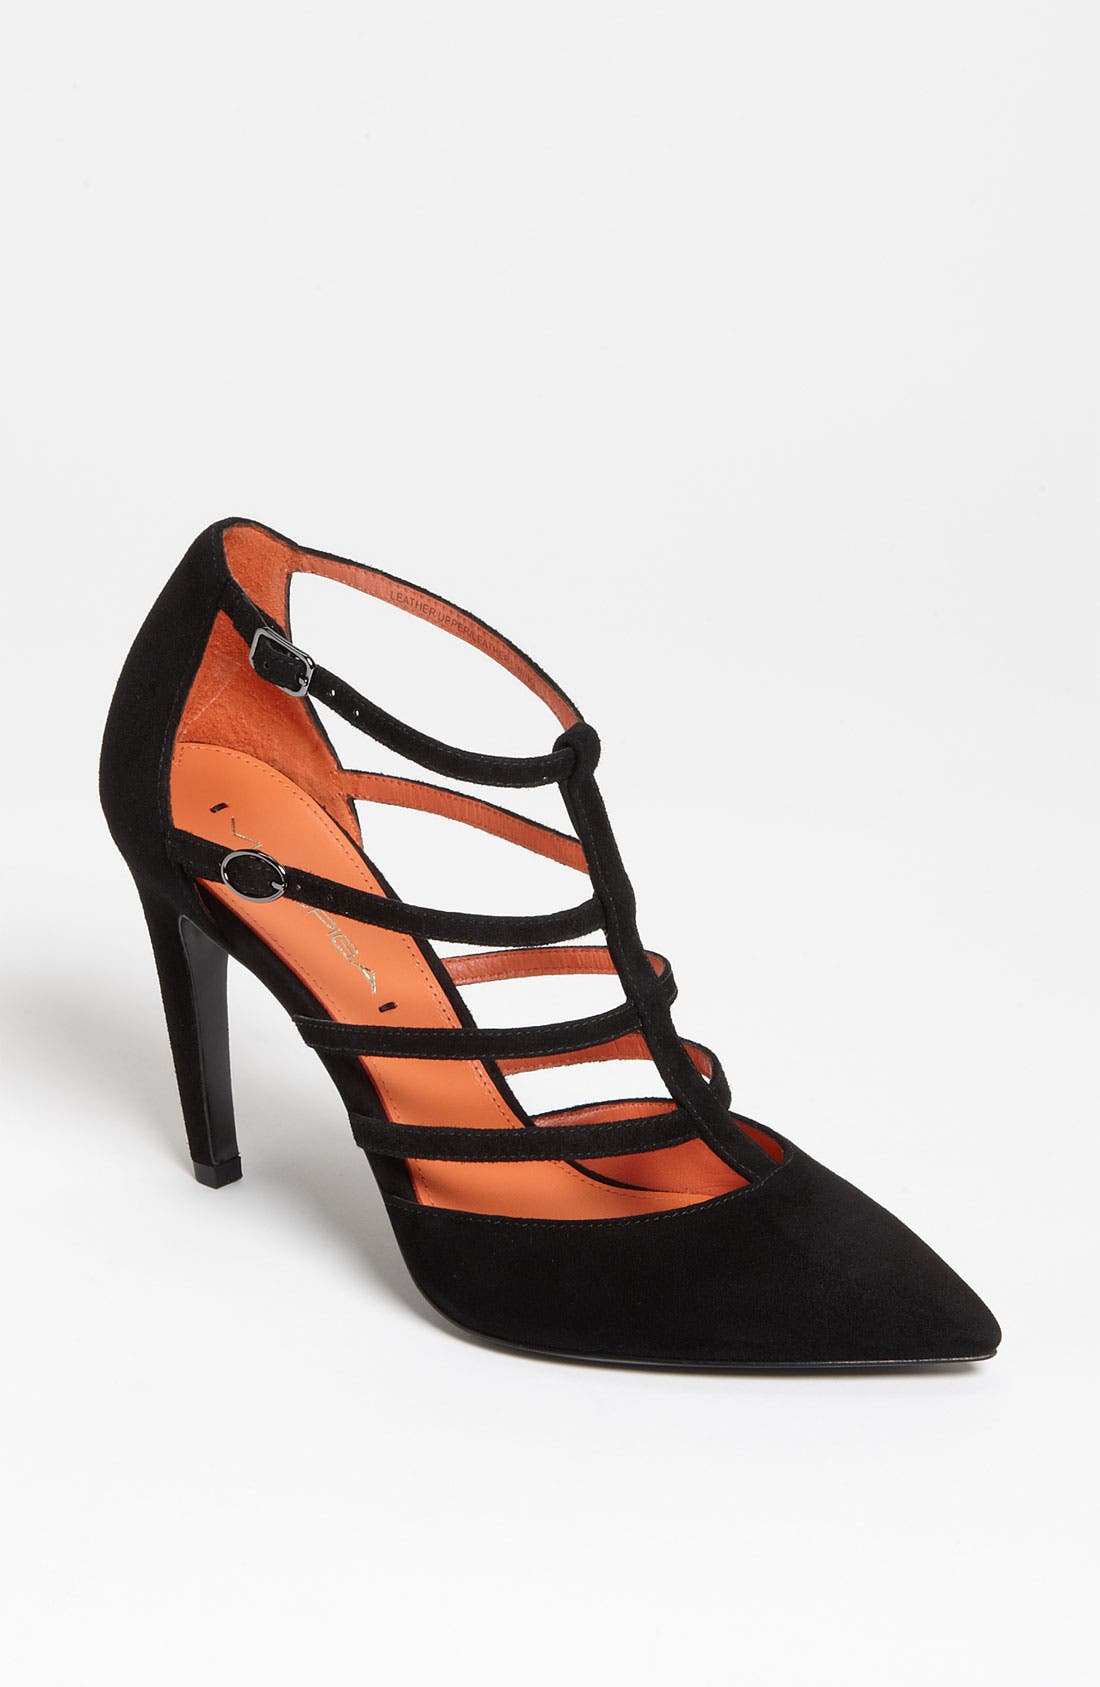 Alternate Image 1 Selected - Via Spiga 'Edita' Pump